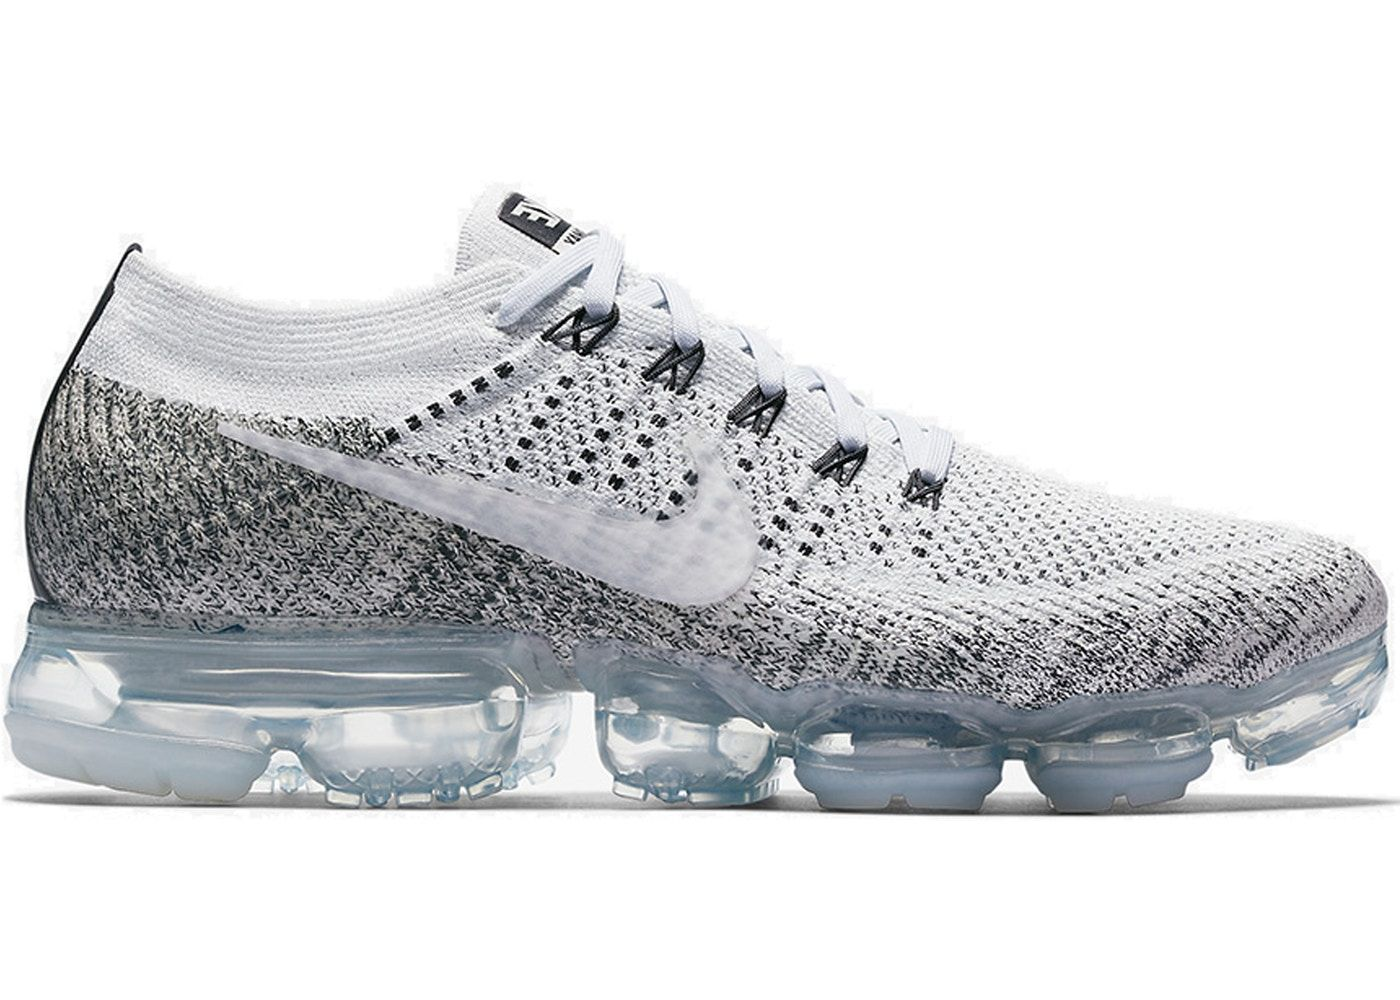 d9d973237a0 Check out the Air VaporMax Oreo available on StockX